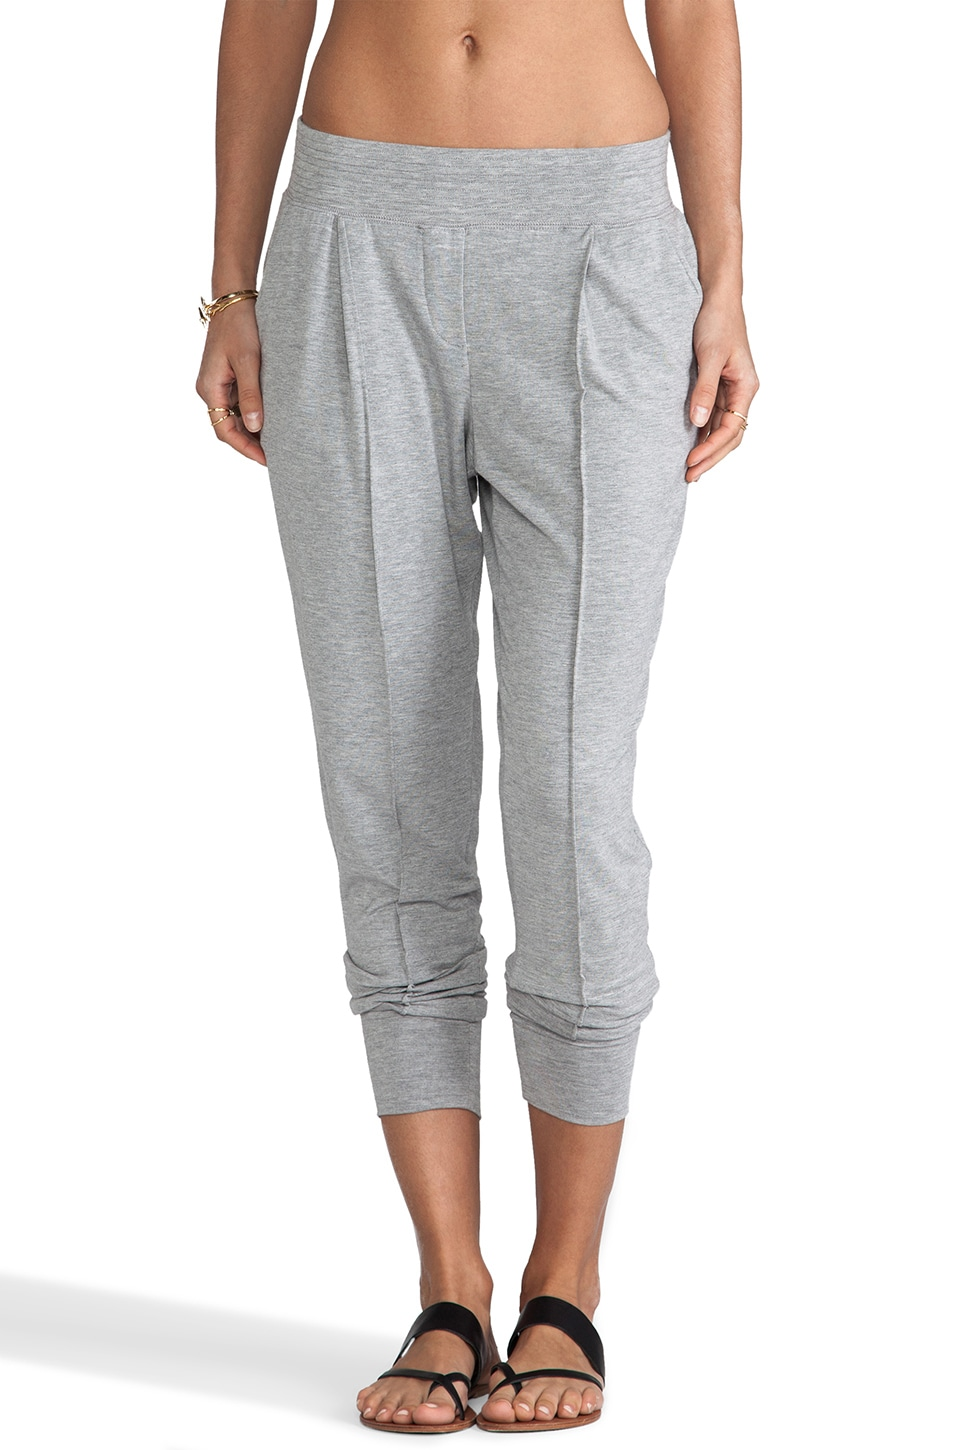 Heather Pintuck Pant in Light Heather Grey